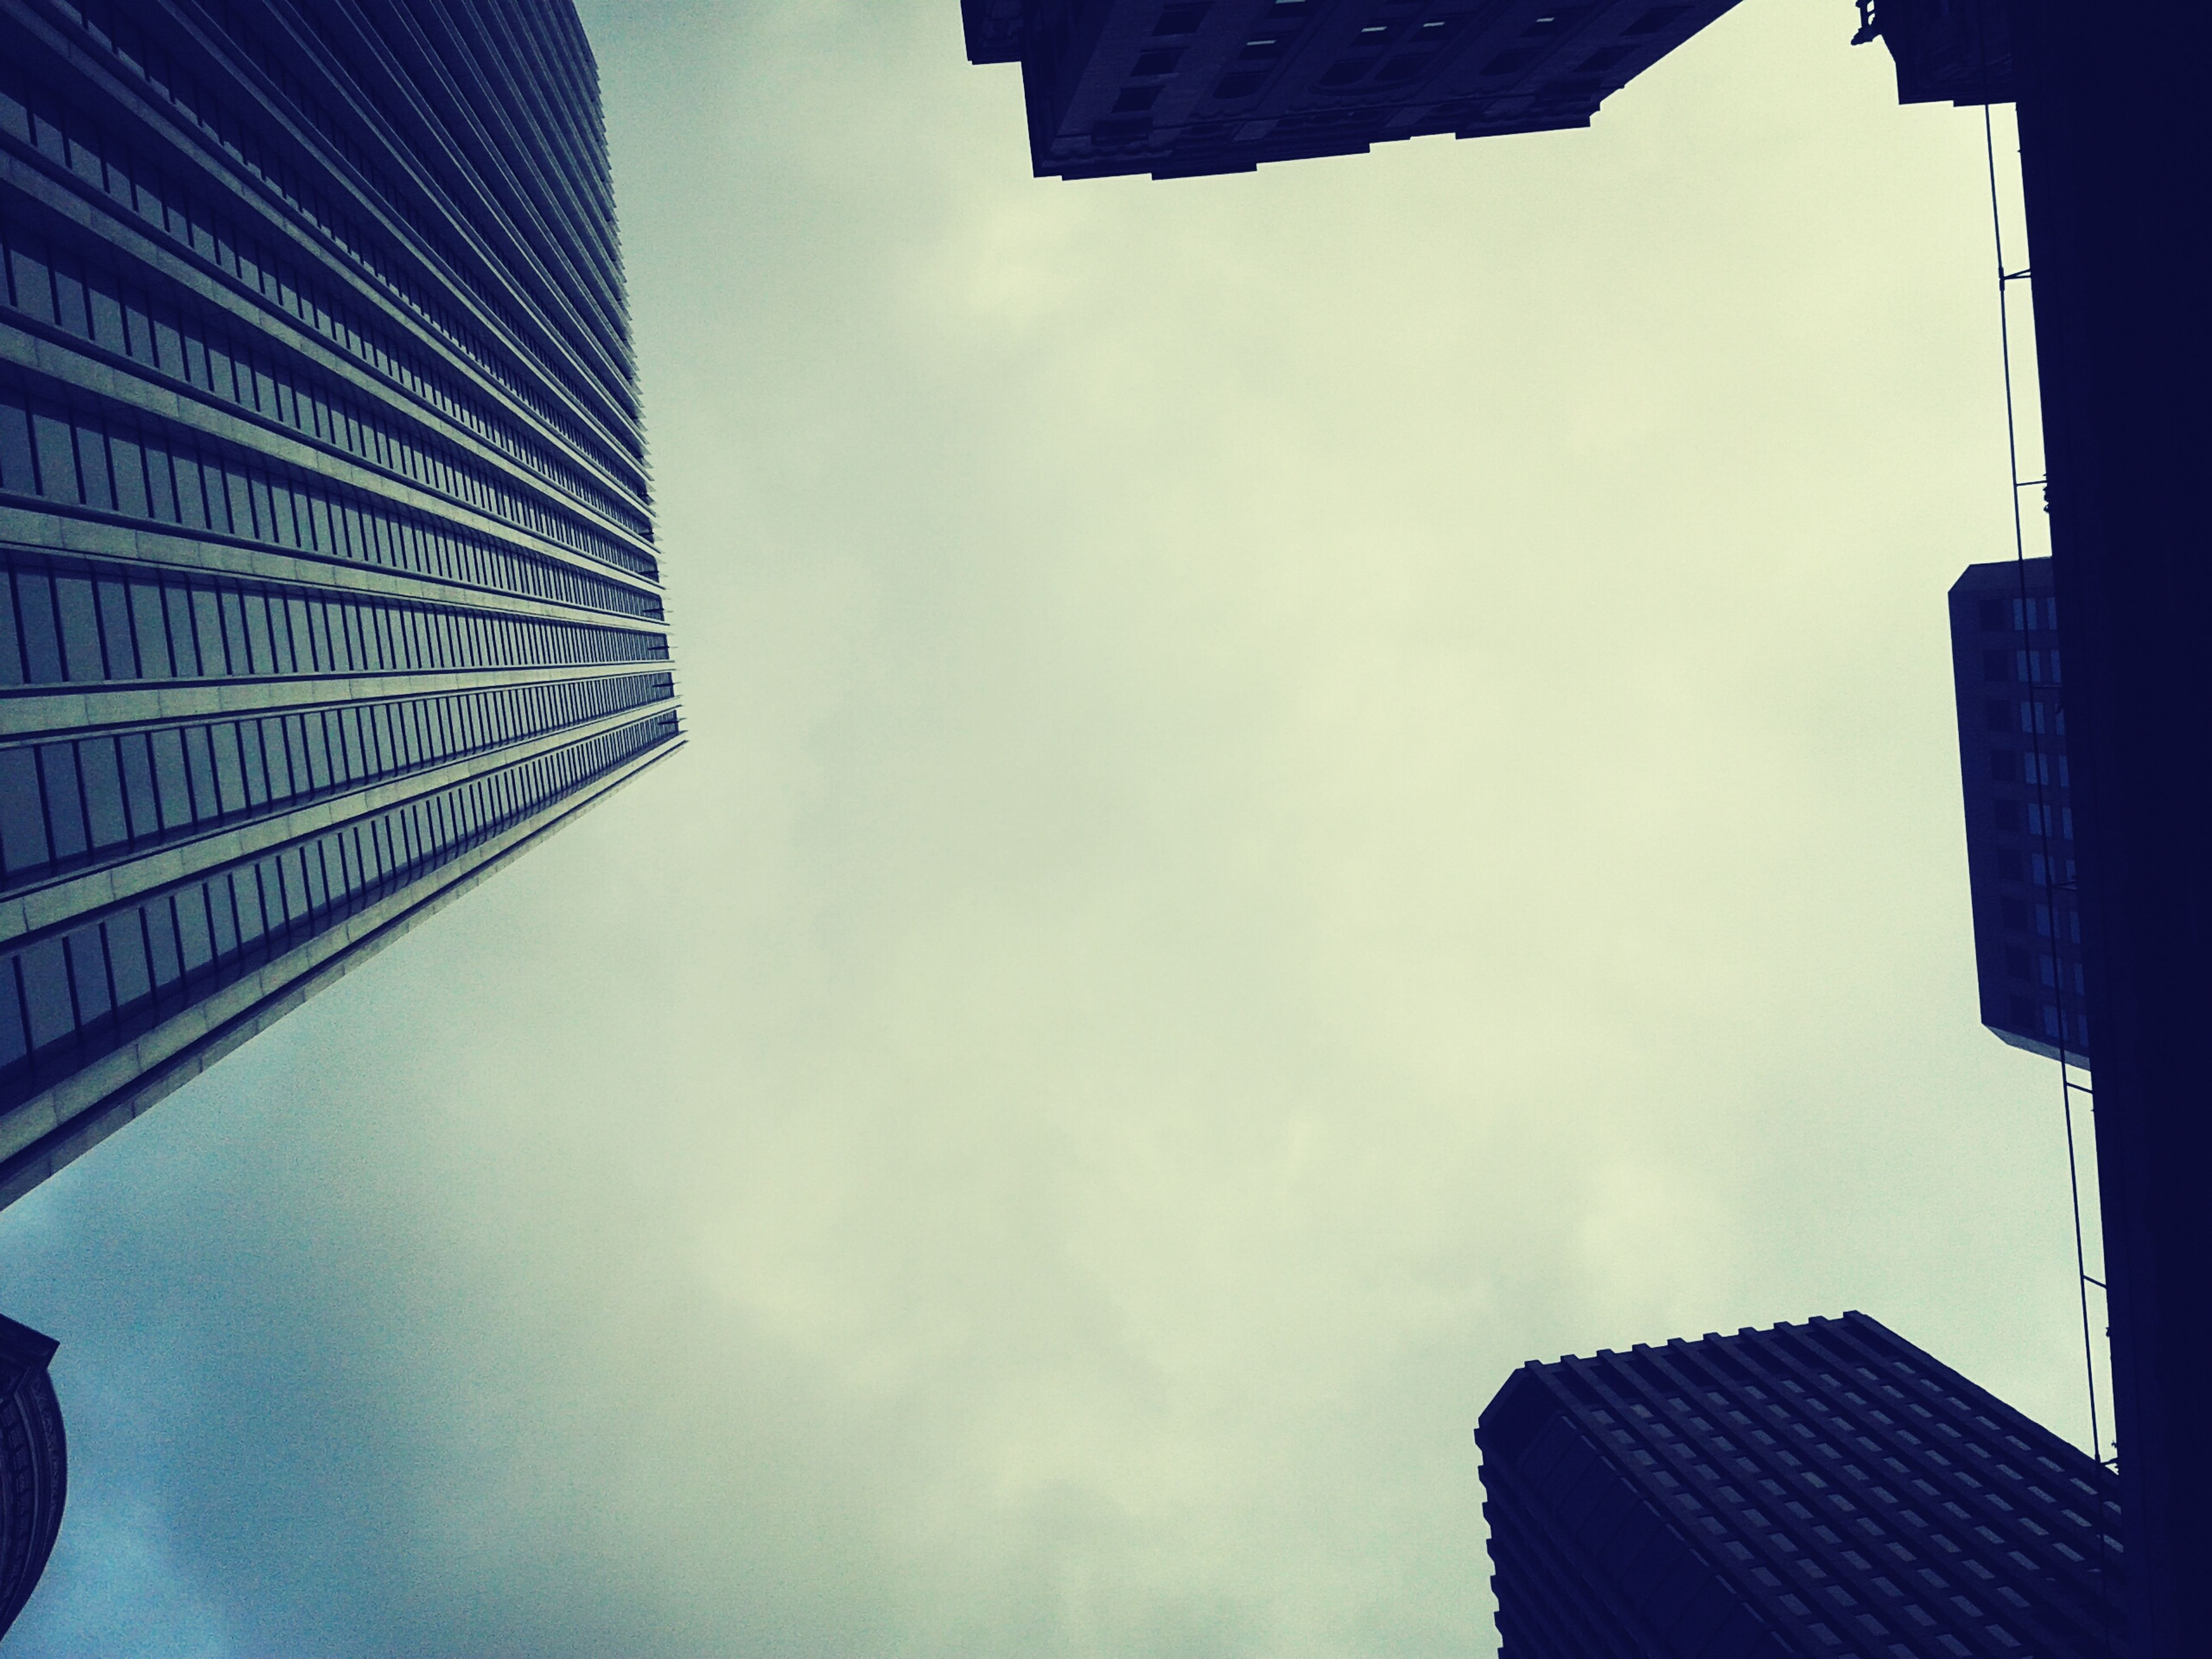 building exterior, architecture, built structure, low angle view, sky, city, building, skyscraper, office building, tall - high, modern, tower, cloud - sky, outdoors, day, residential building, no people, directly below, blue, cloud